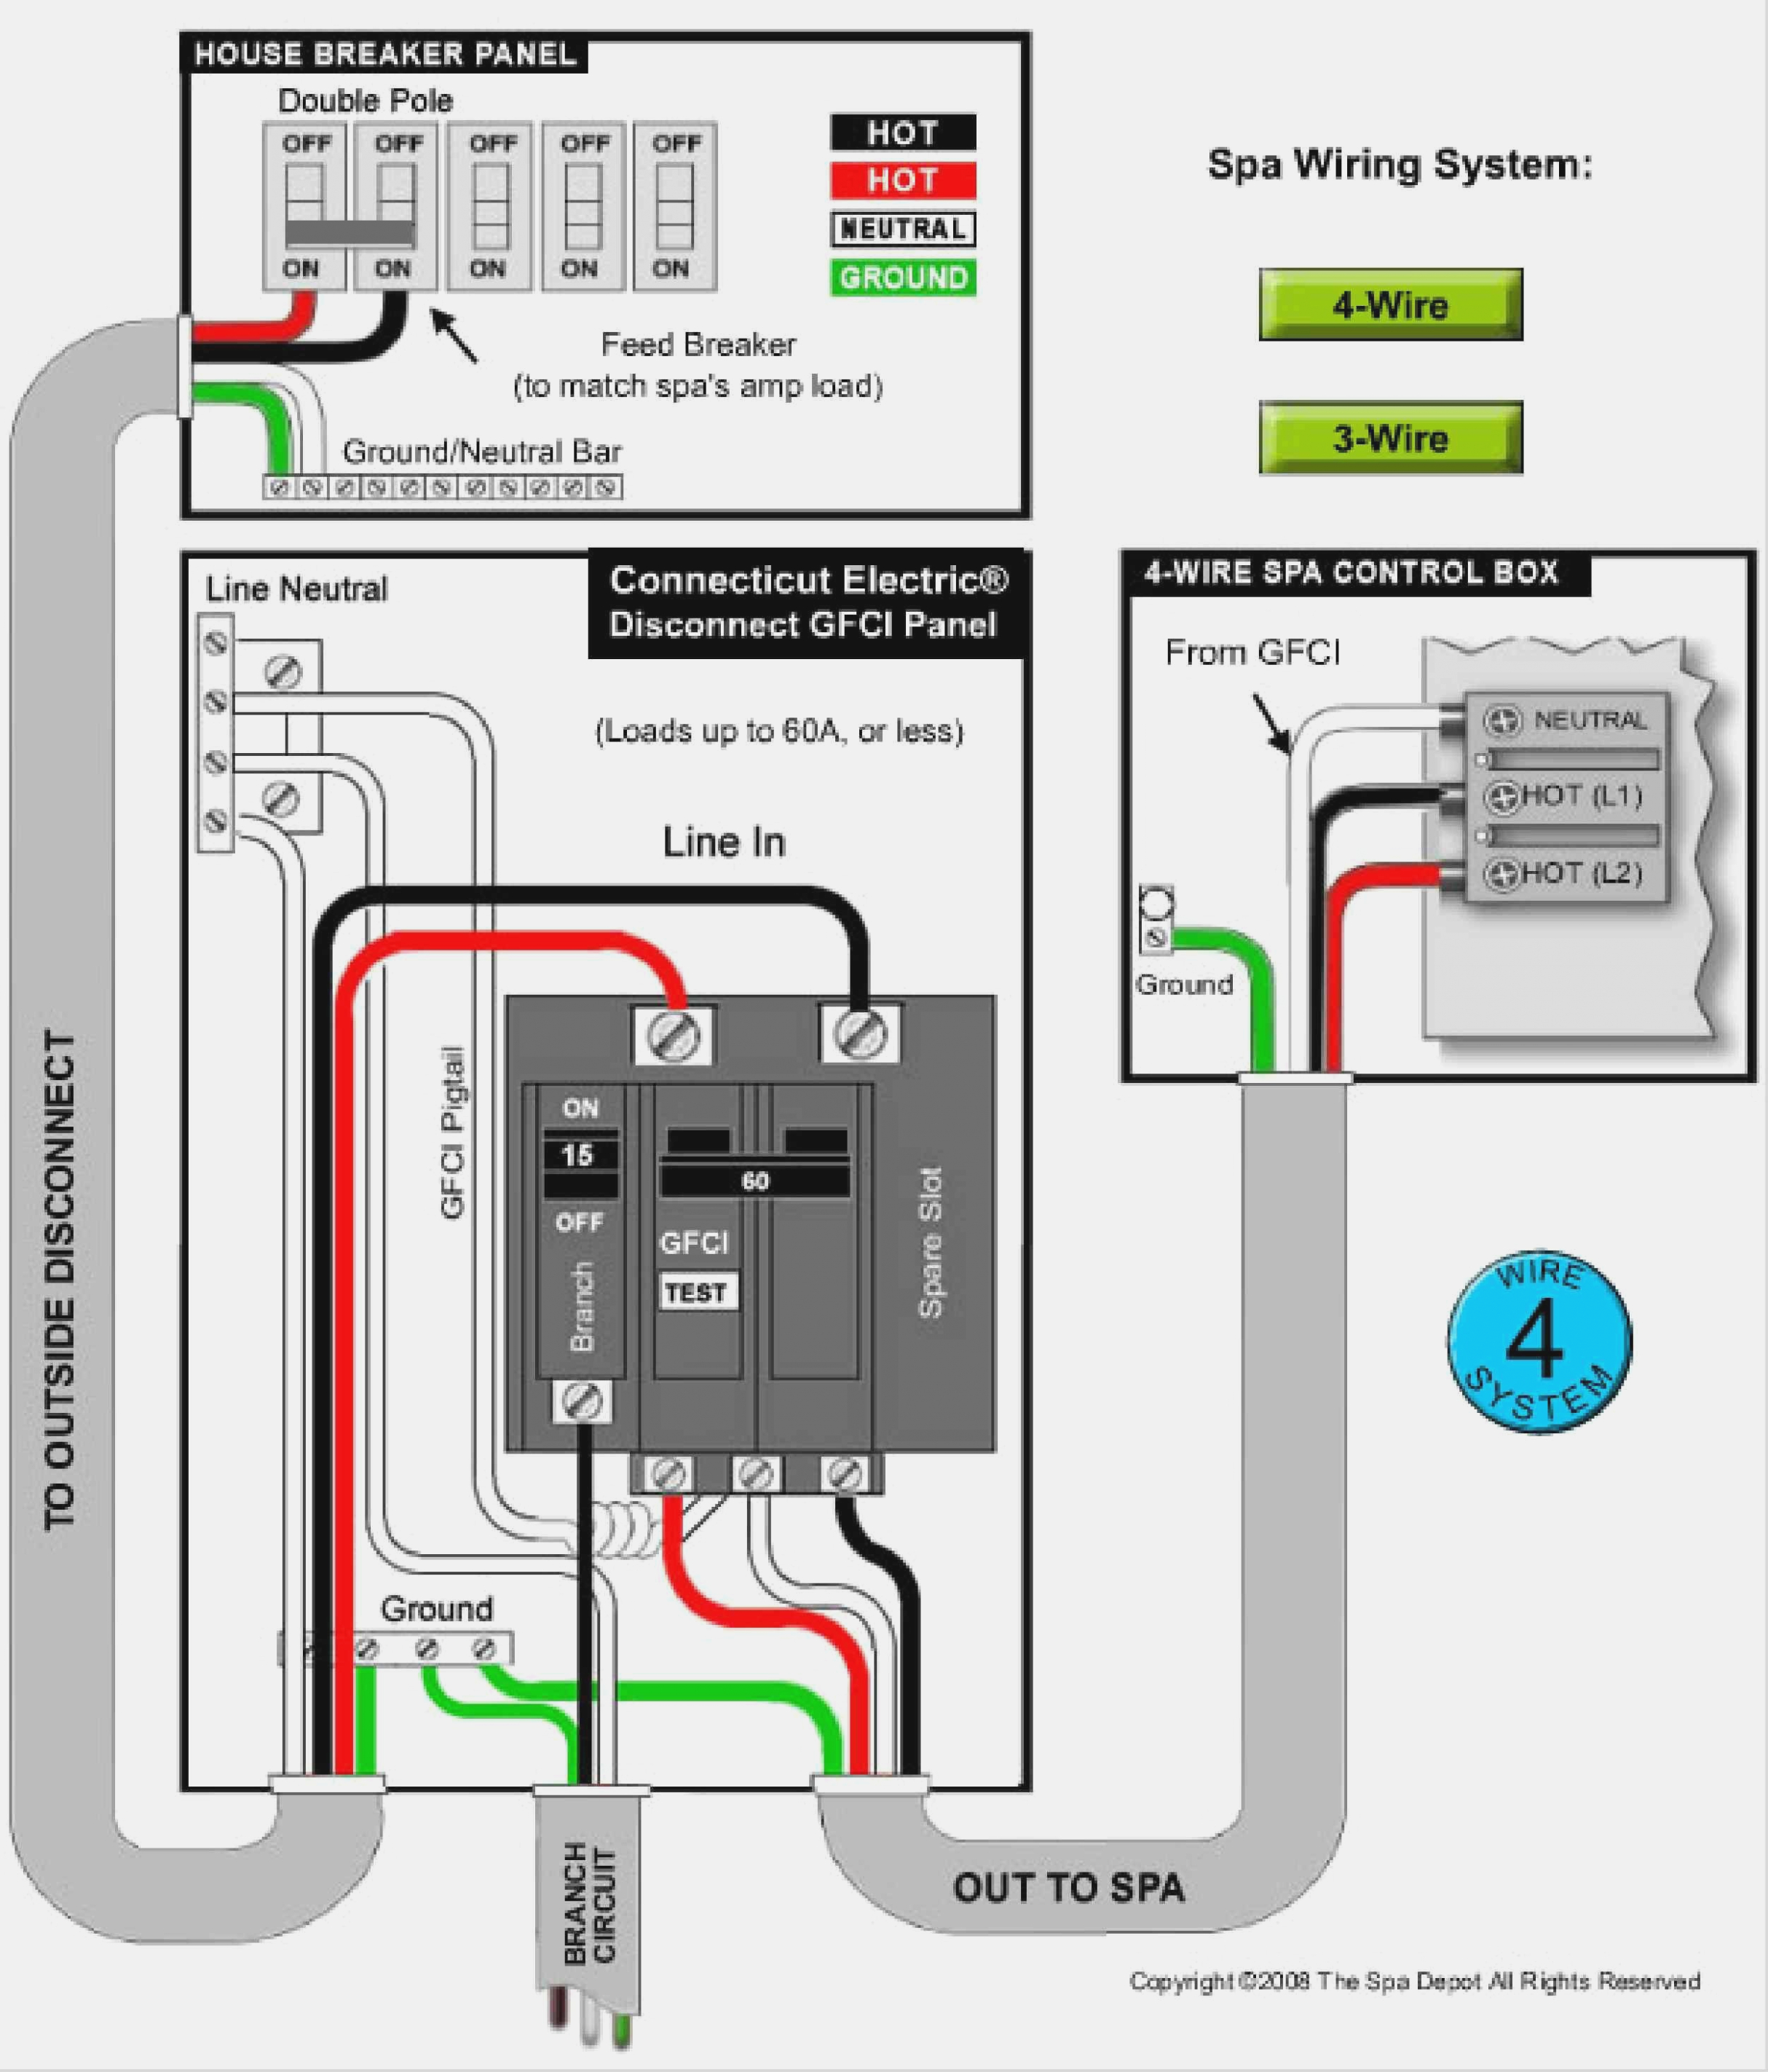 Wiring Diagram For A Gfci Breaker | Wiring Diagram - 2 Pole Gfci Breaker Wiring Diagram